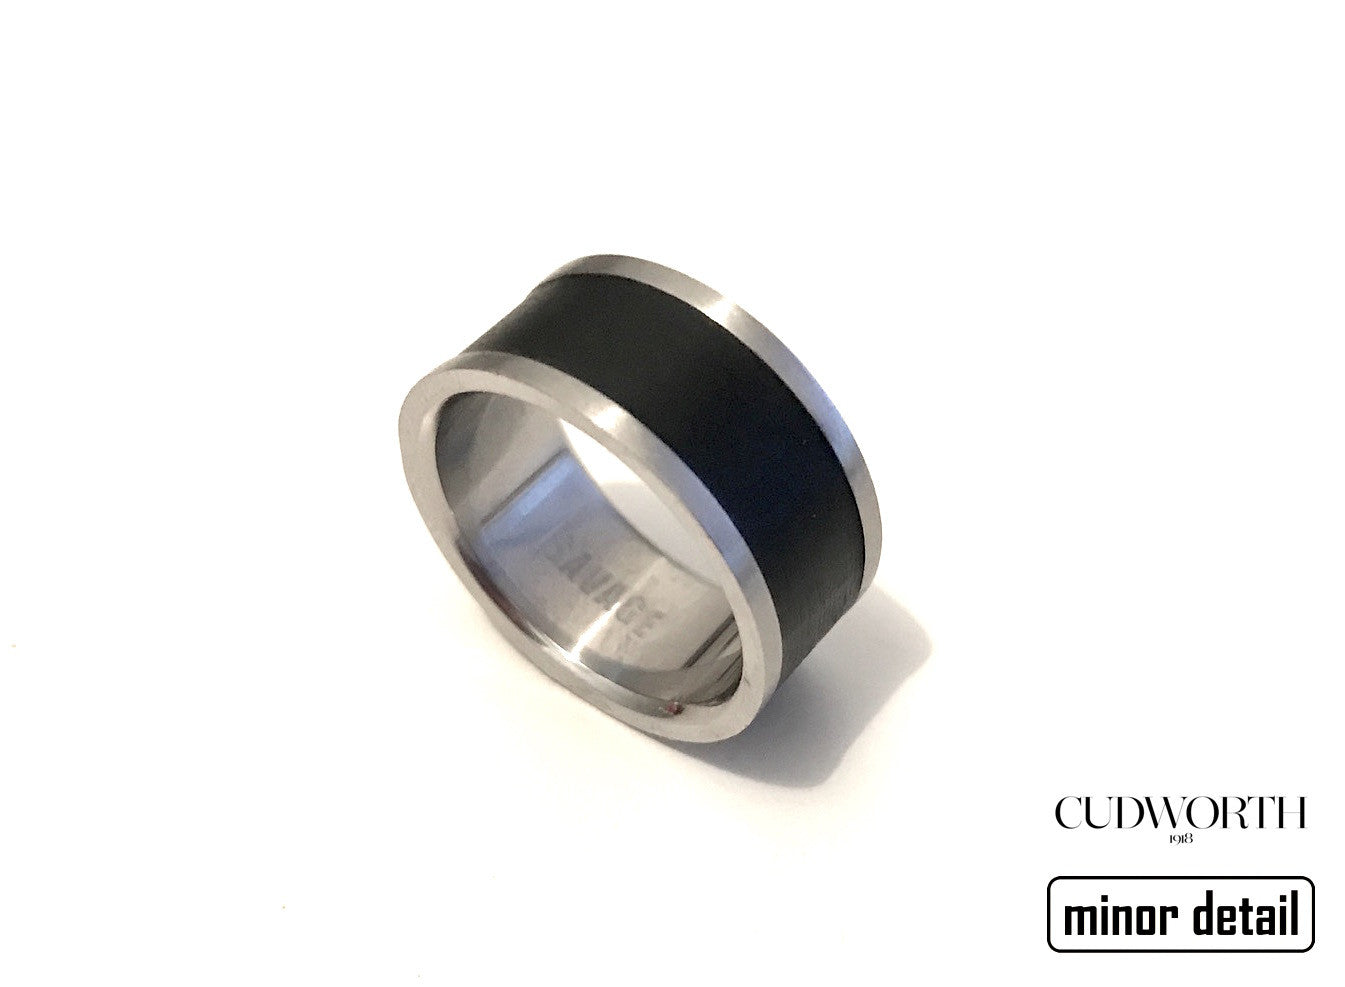 Mens Black Banded Steel Ring by Cudworth men's jewellery Australia.